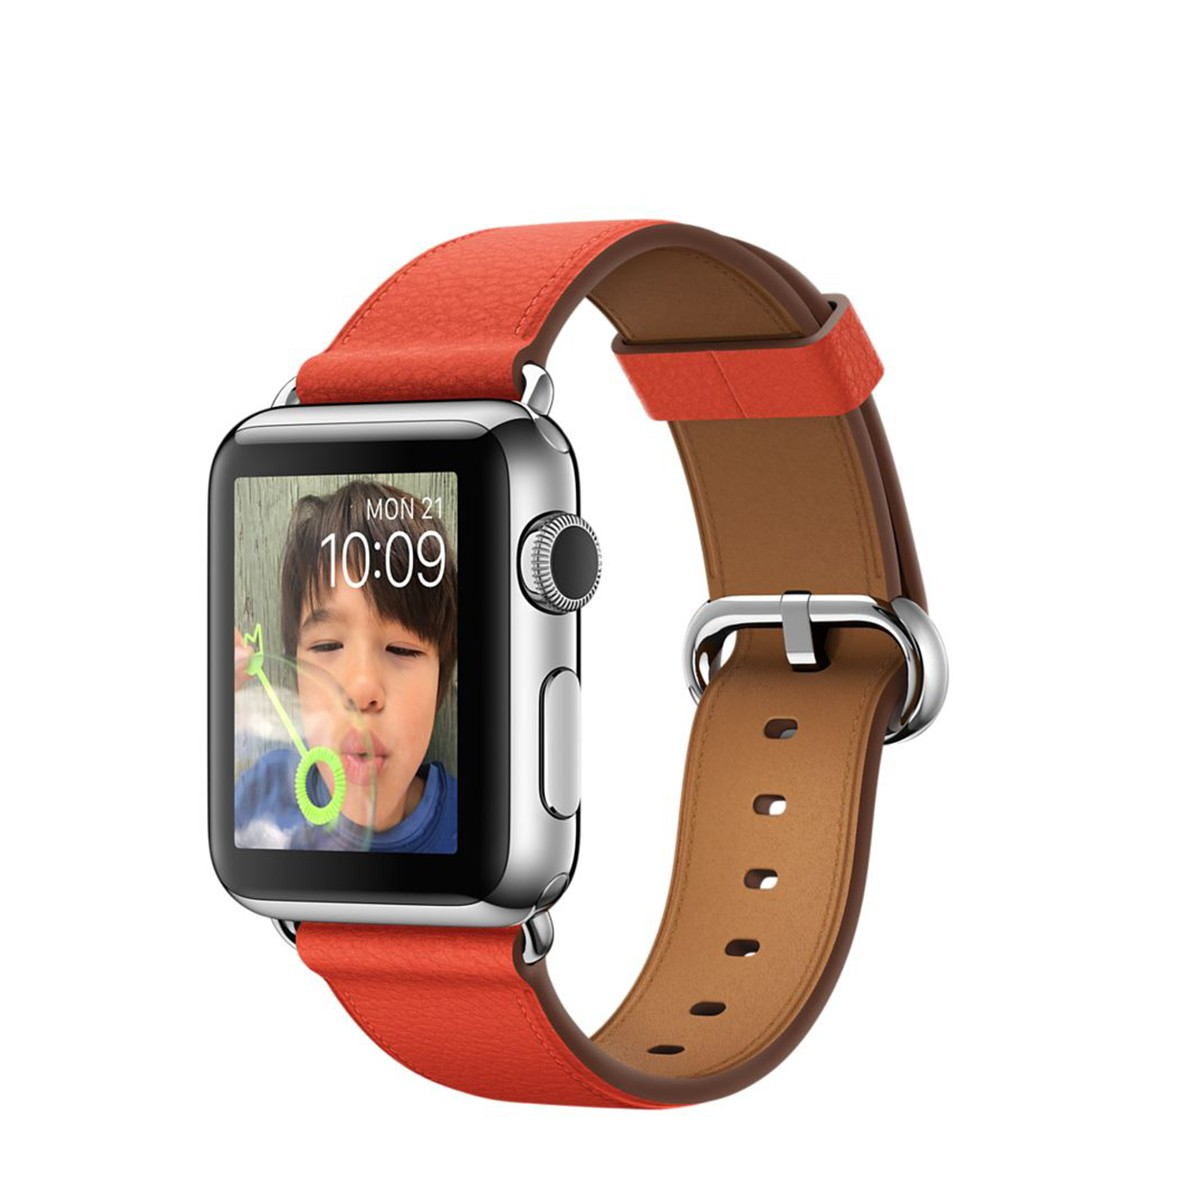 Apple Watch 38 mm Stainless Steel Case s Red Classic Buckle